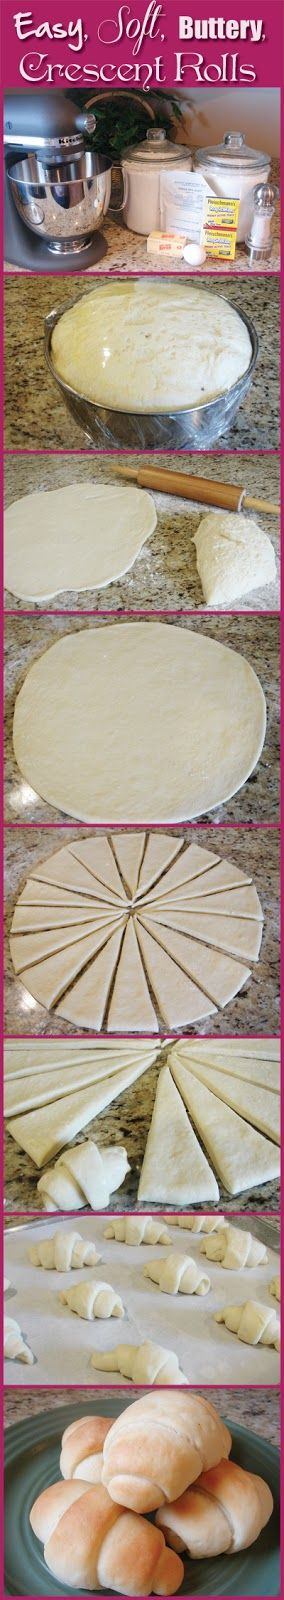 No more processed Pillsbury! Crescent Recipe